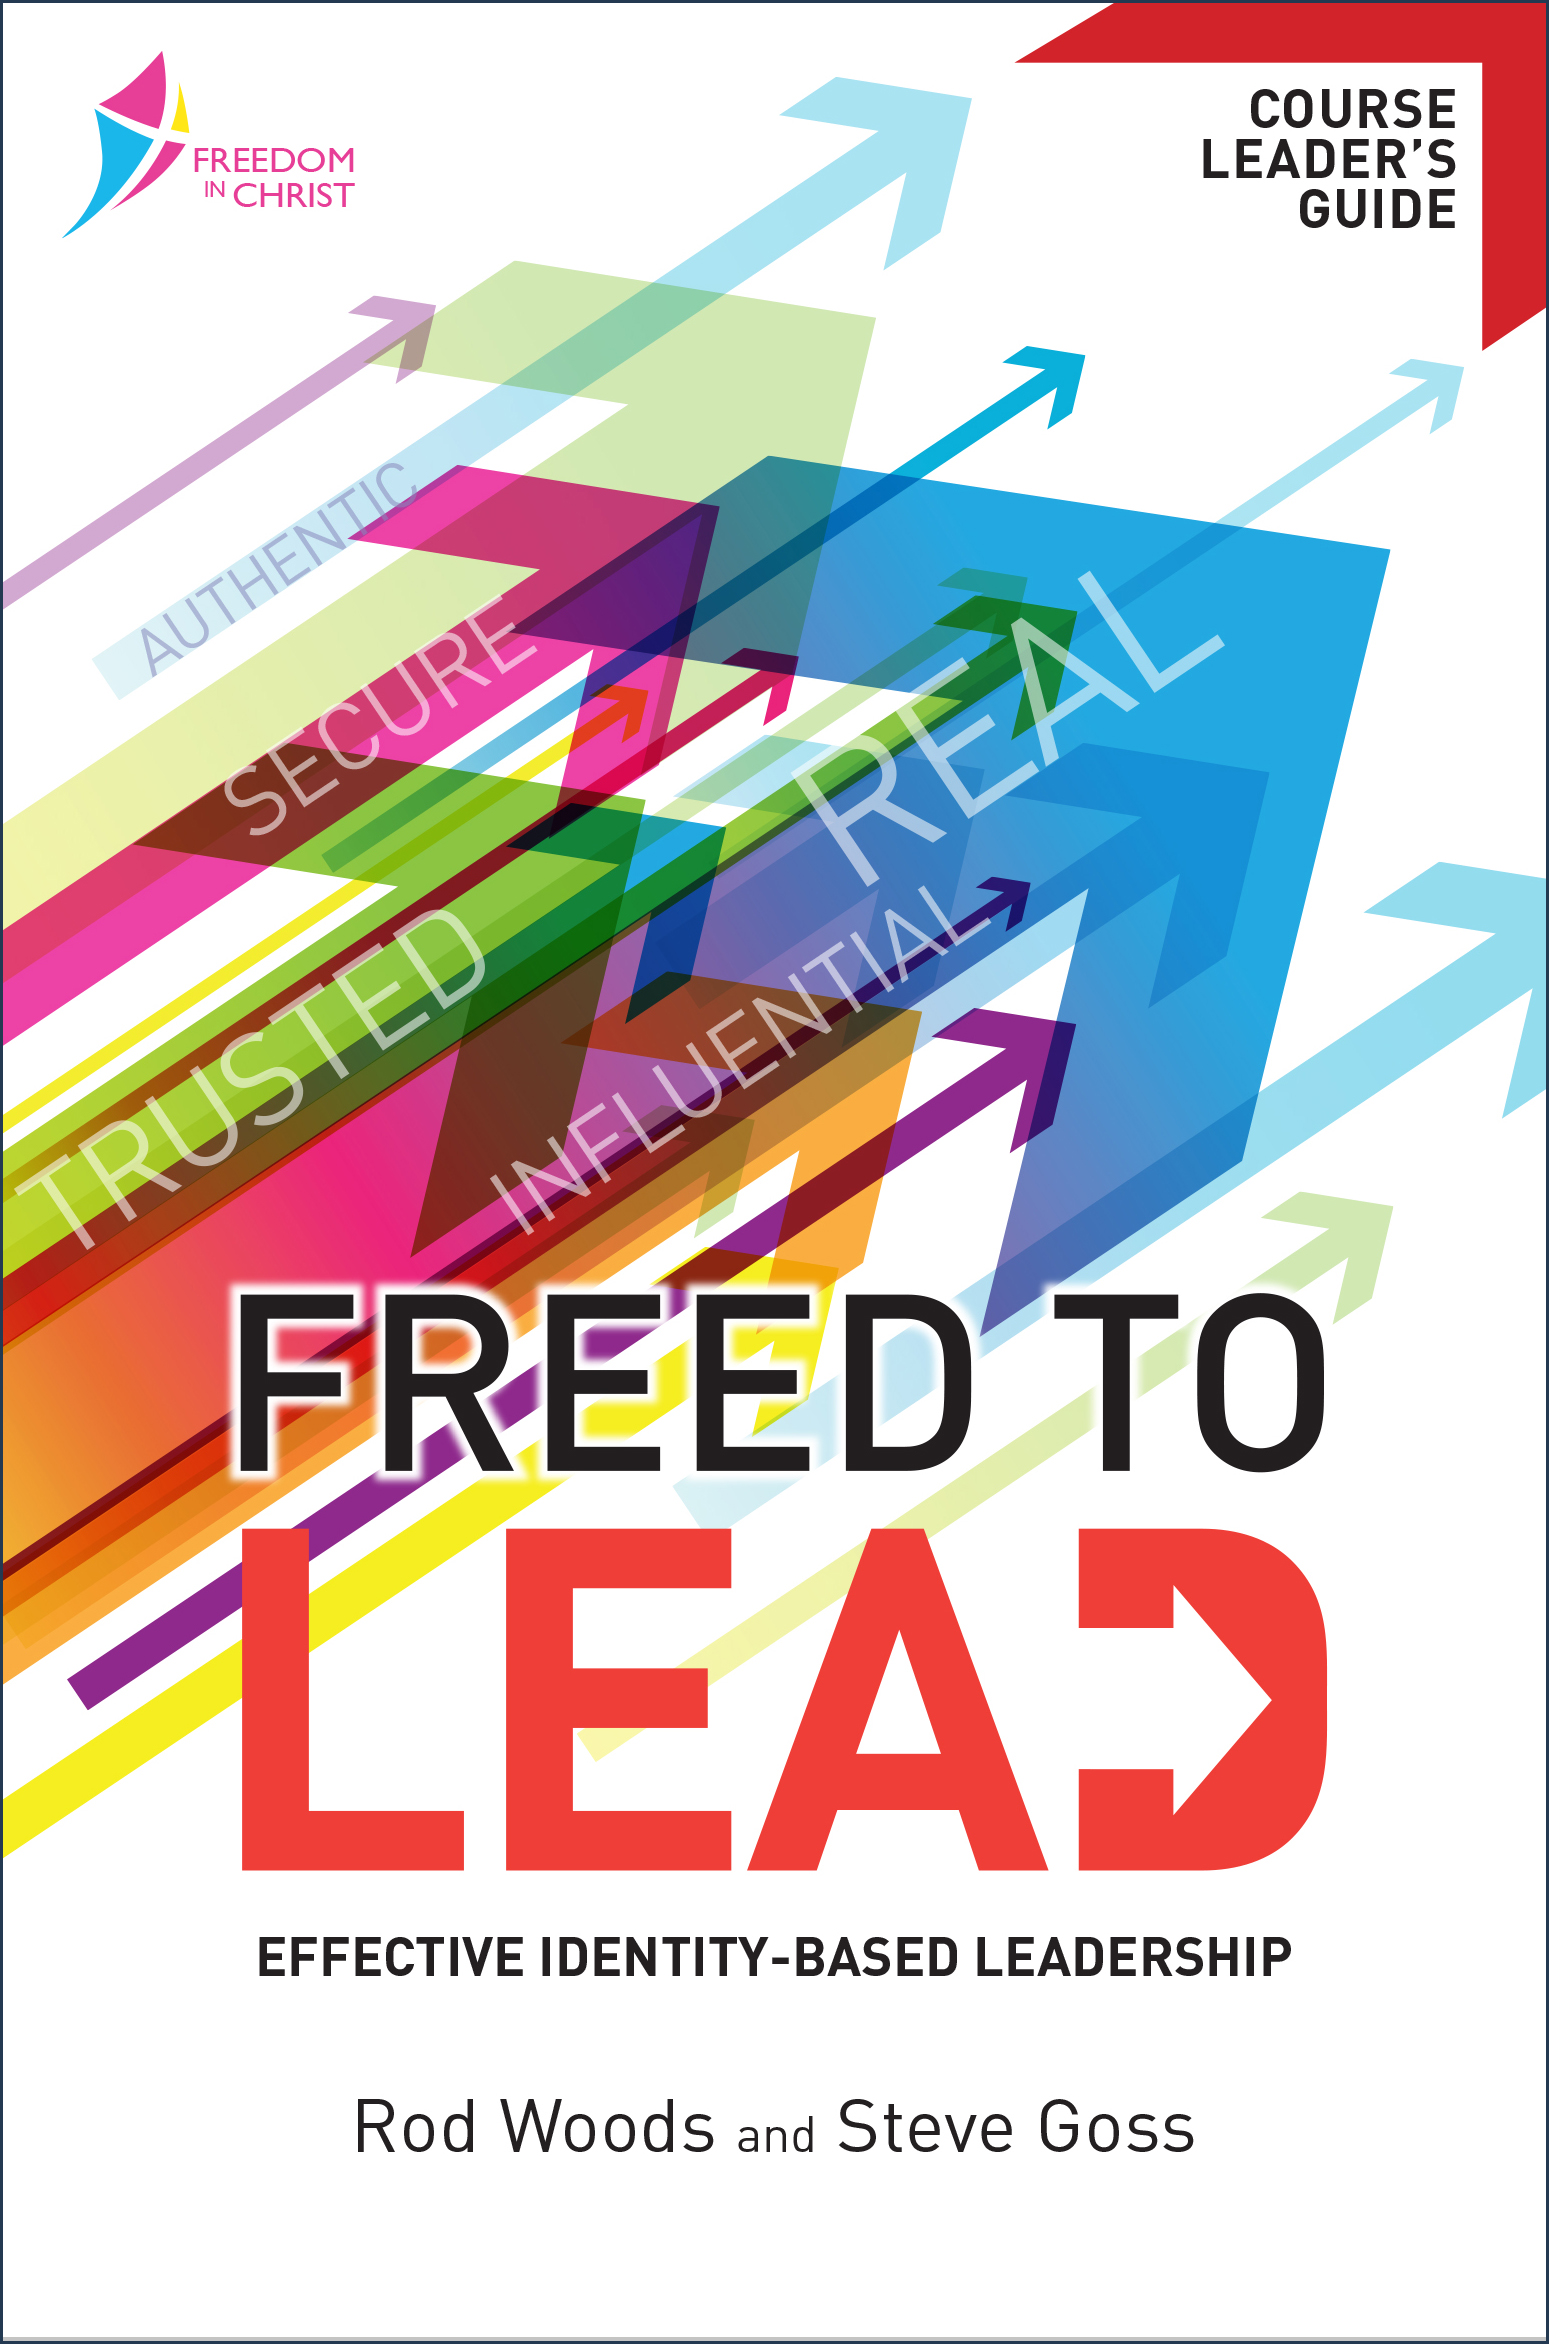 Freed to Lead Leader's Guide